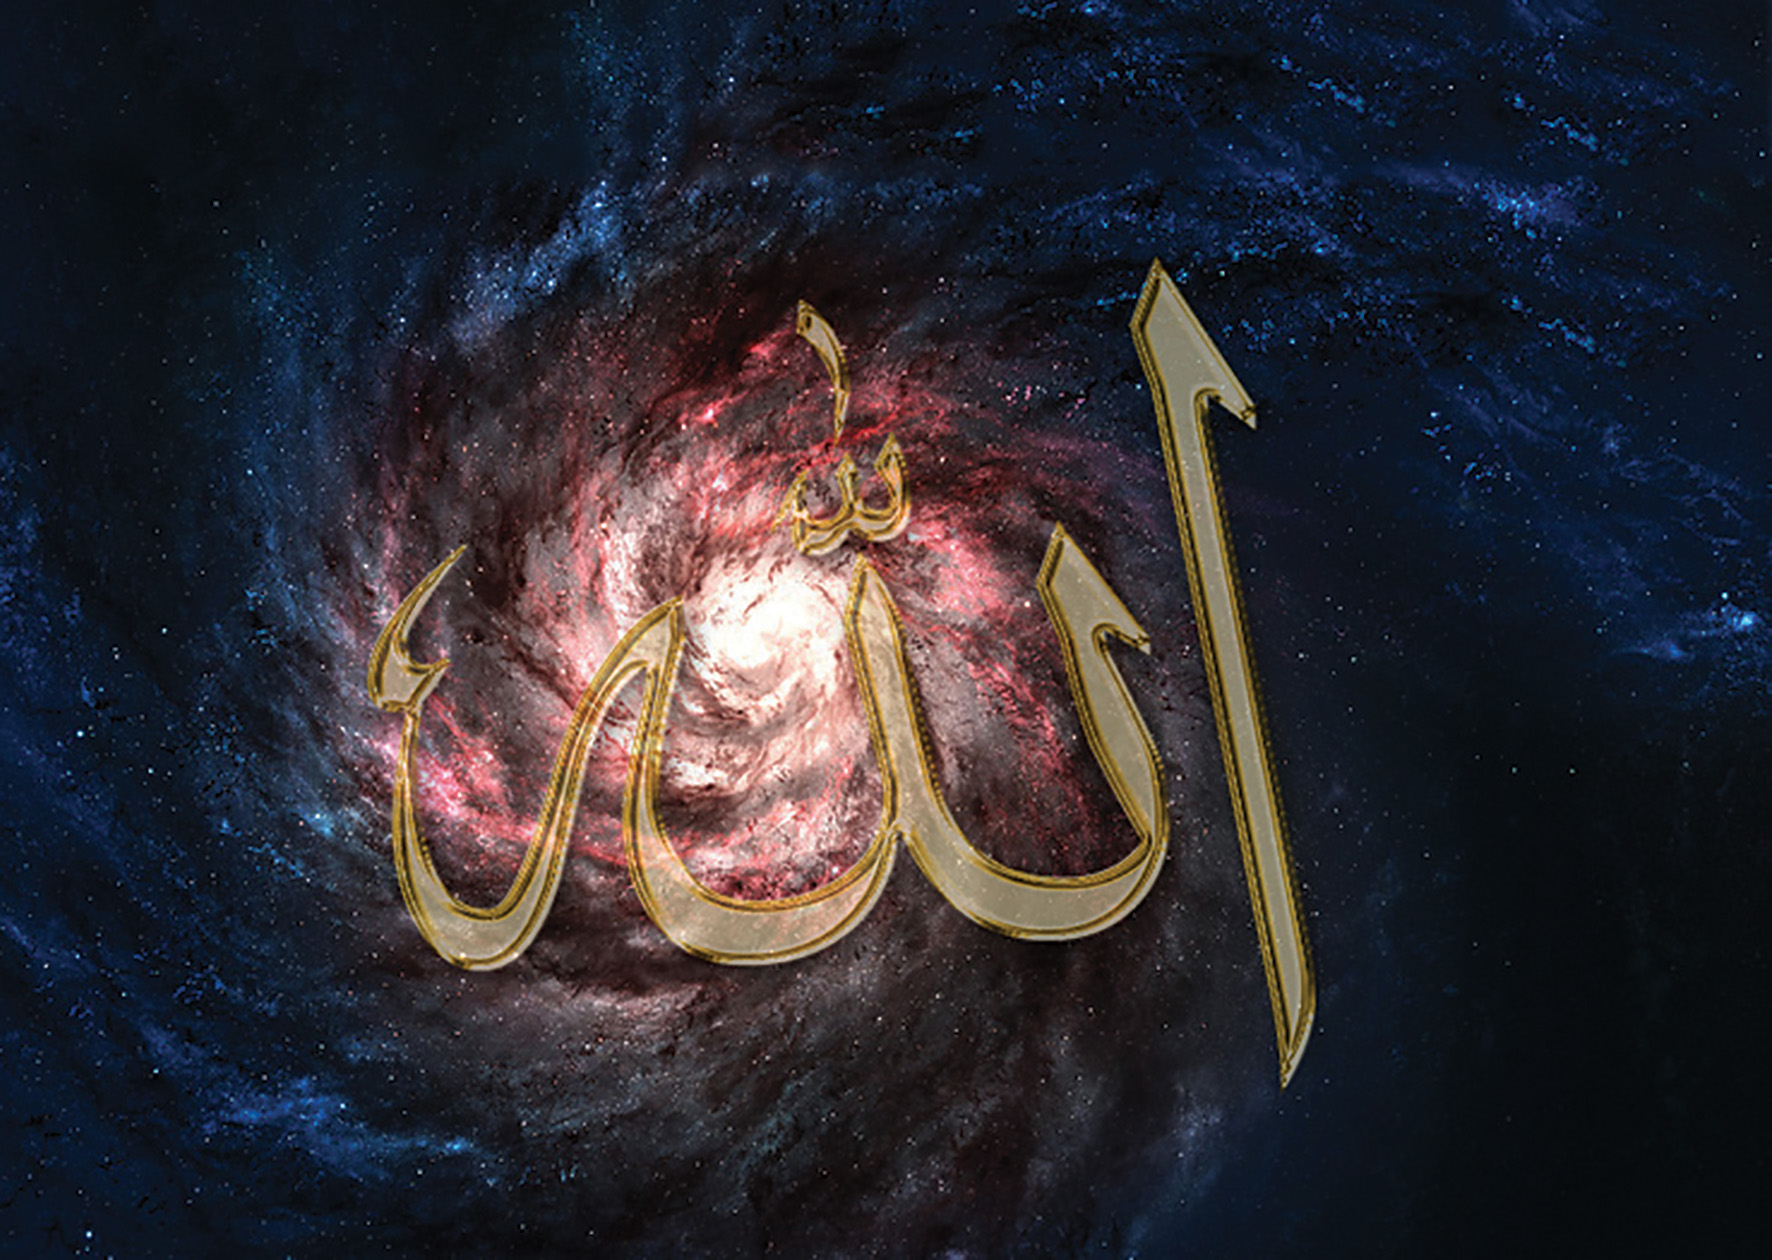 How does Allah manage the whole universe?